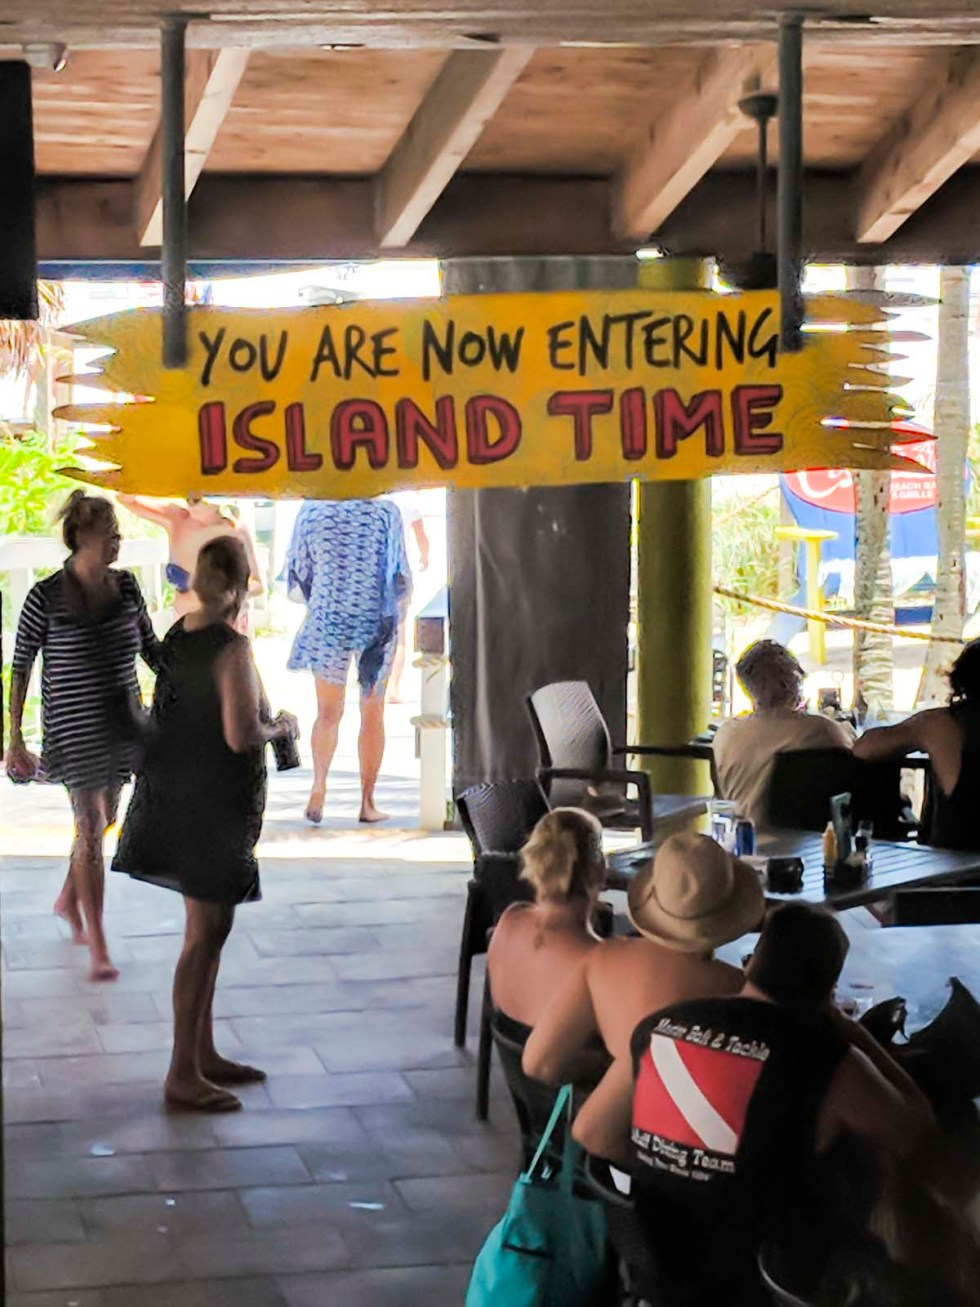 Plank with slogan you are now entering island time